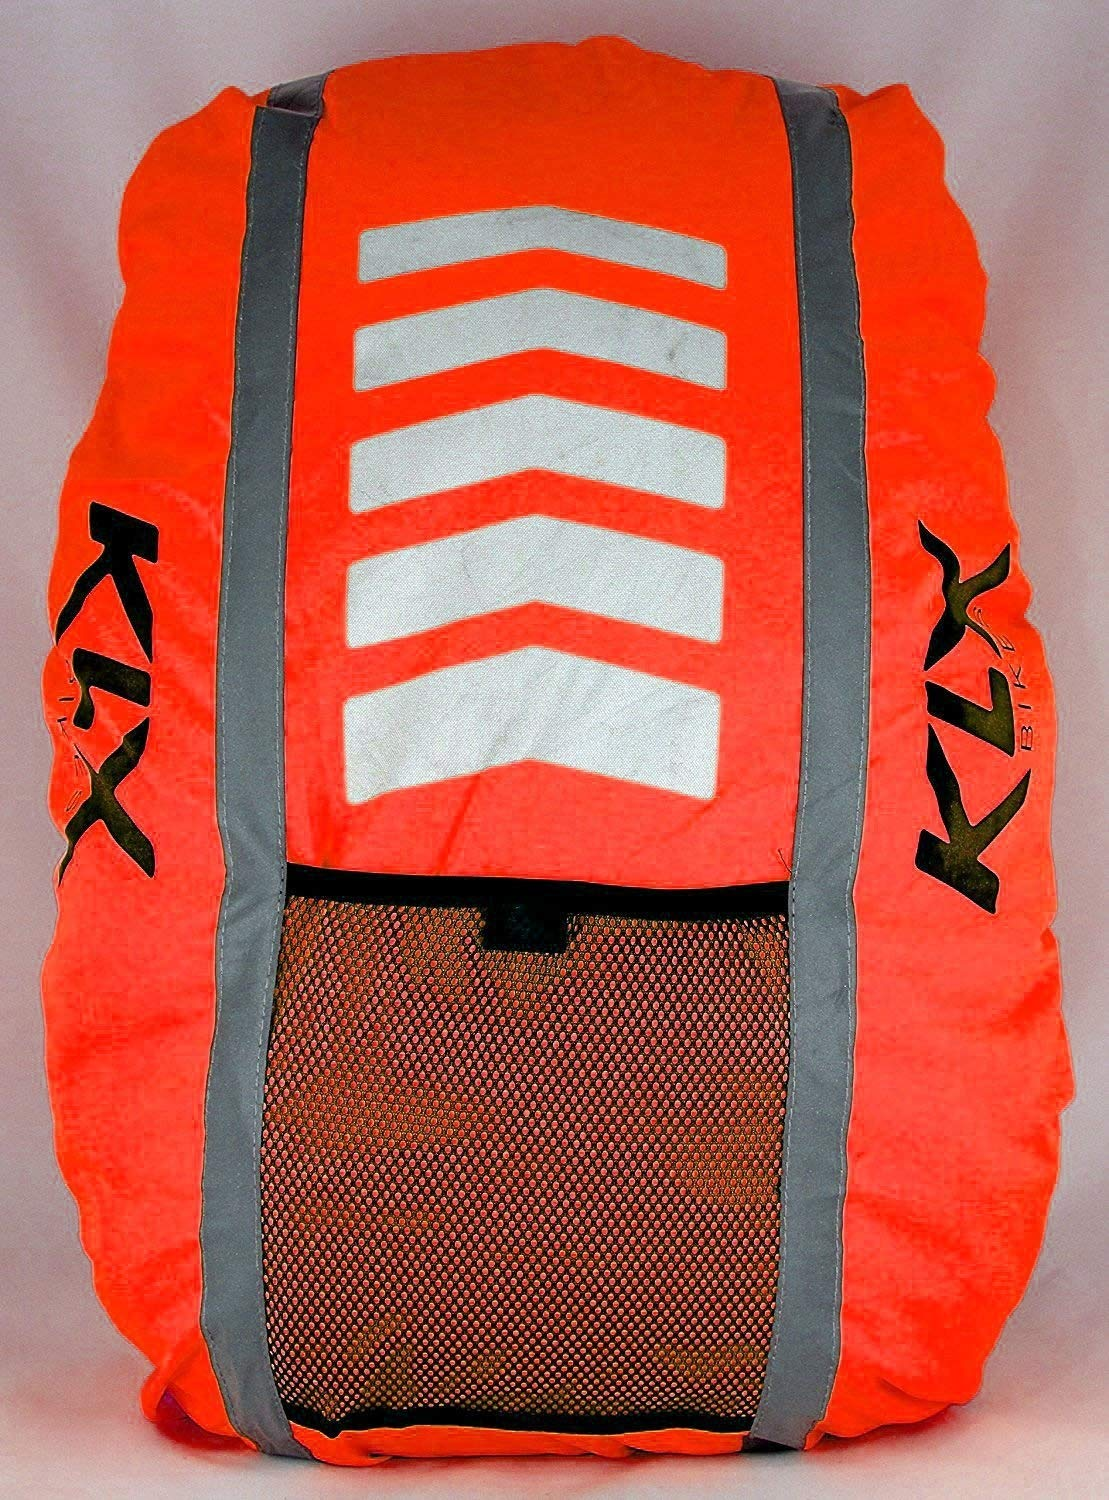 ec25f4eaf285 KLX Heavy Duty High Visibility Reflective Waterproof Rucksack Backpack Cover  - New Improved (Orange)  Amazon.co.uk  Sports   Outdoors